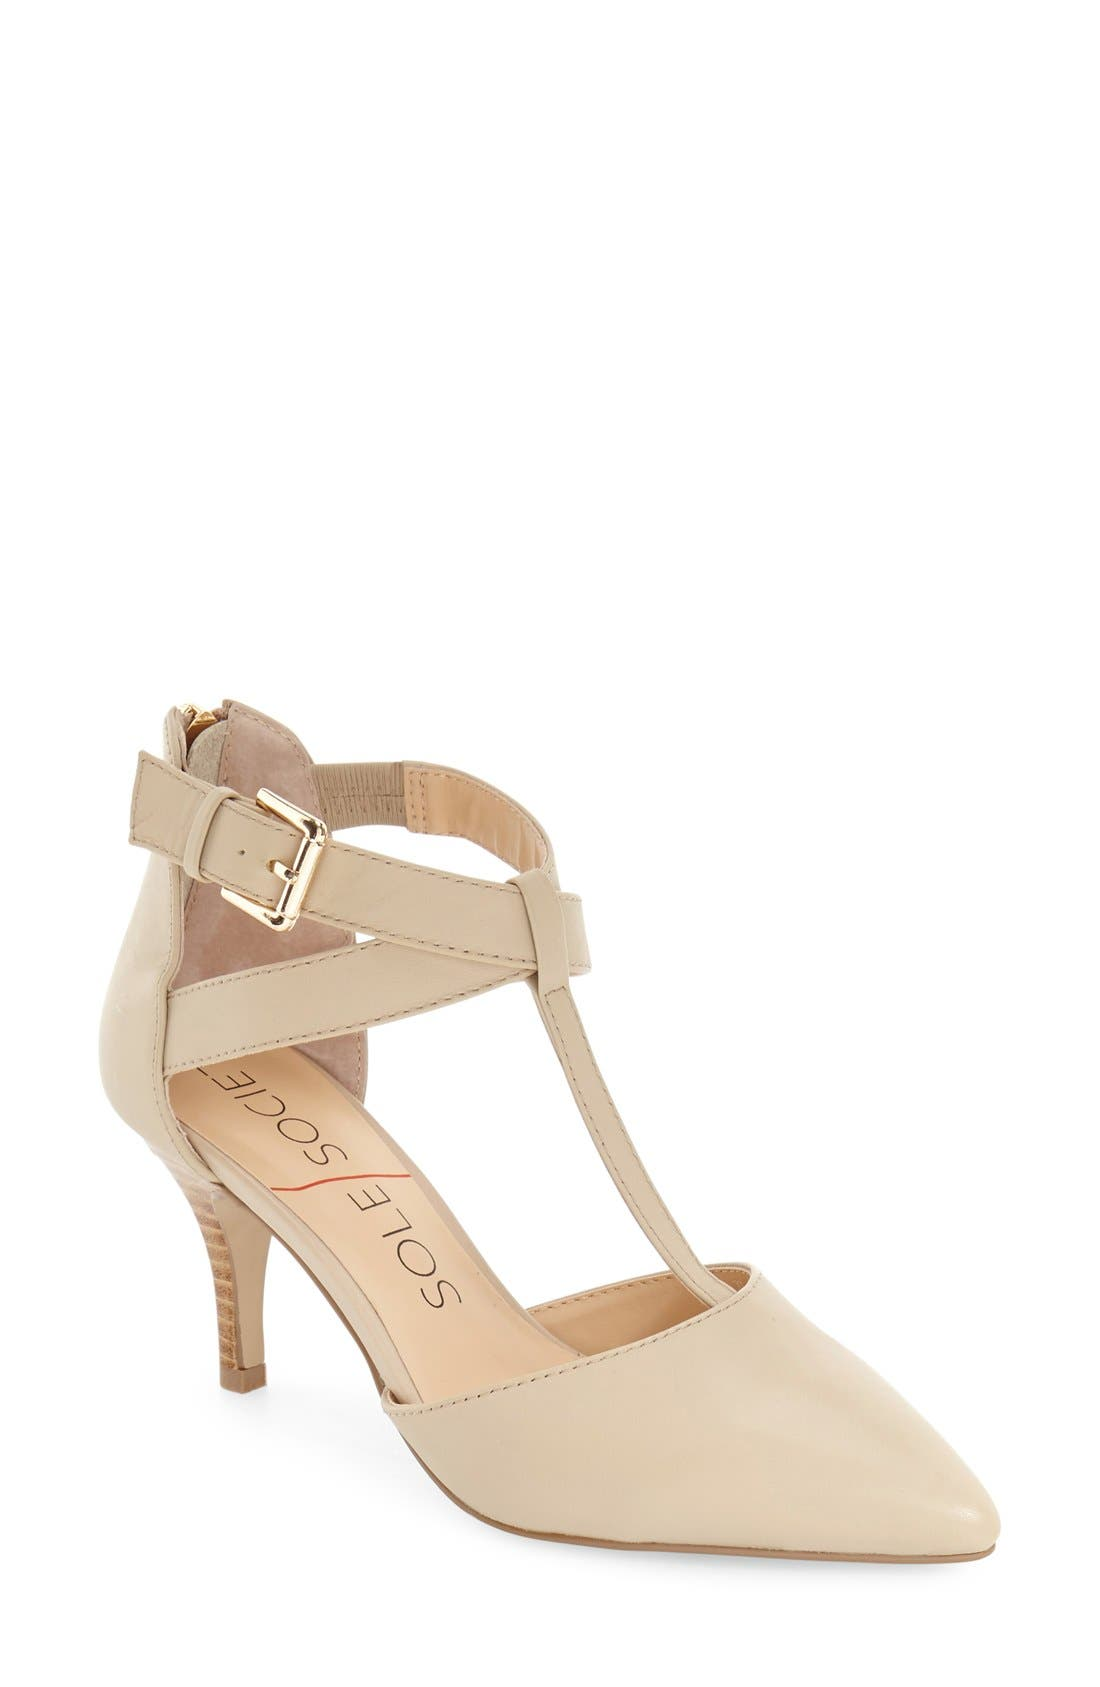 Alternate Image 1 Selected - Sole Society 'Avalon' T-Strap Pump (Women)